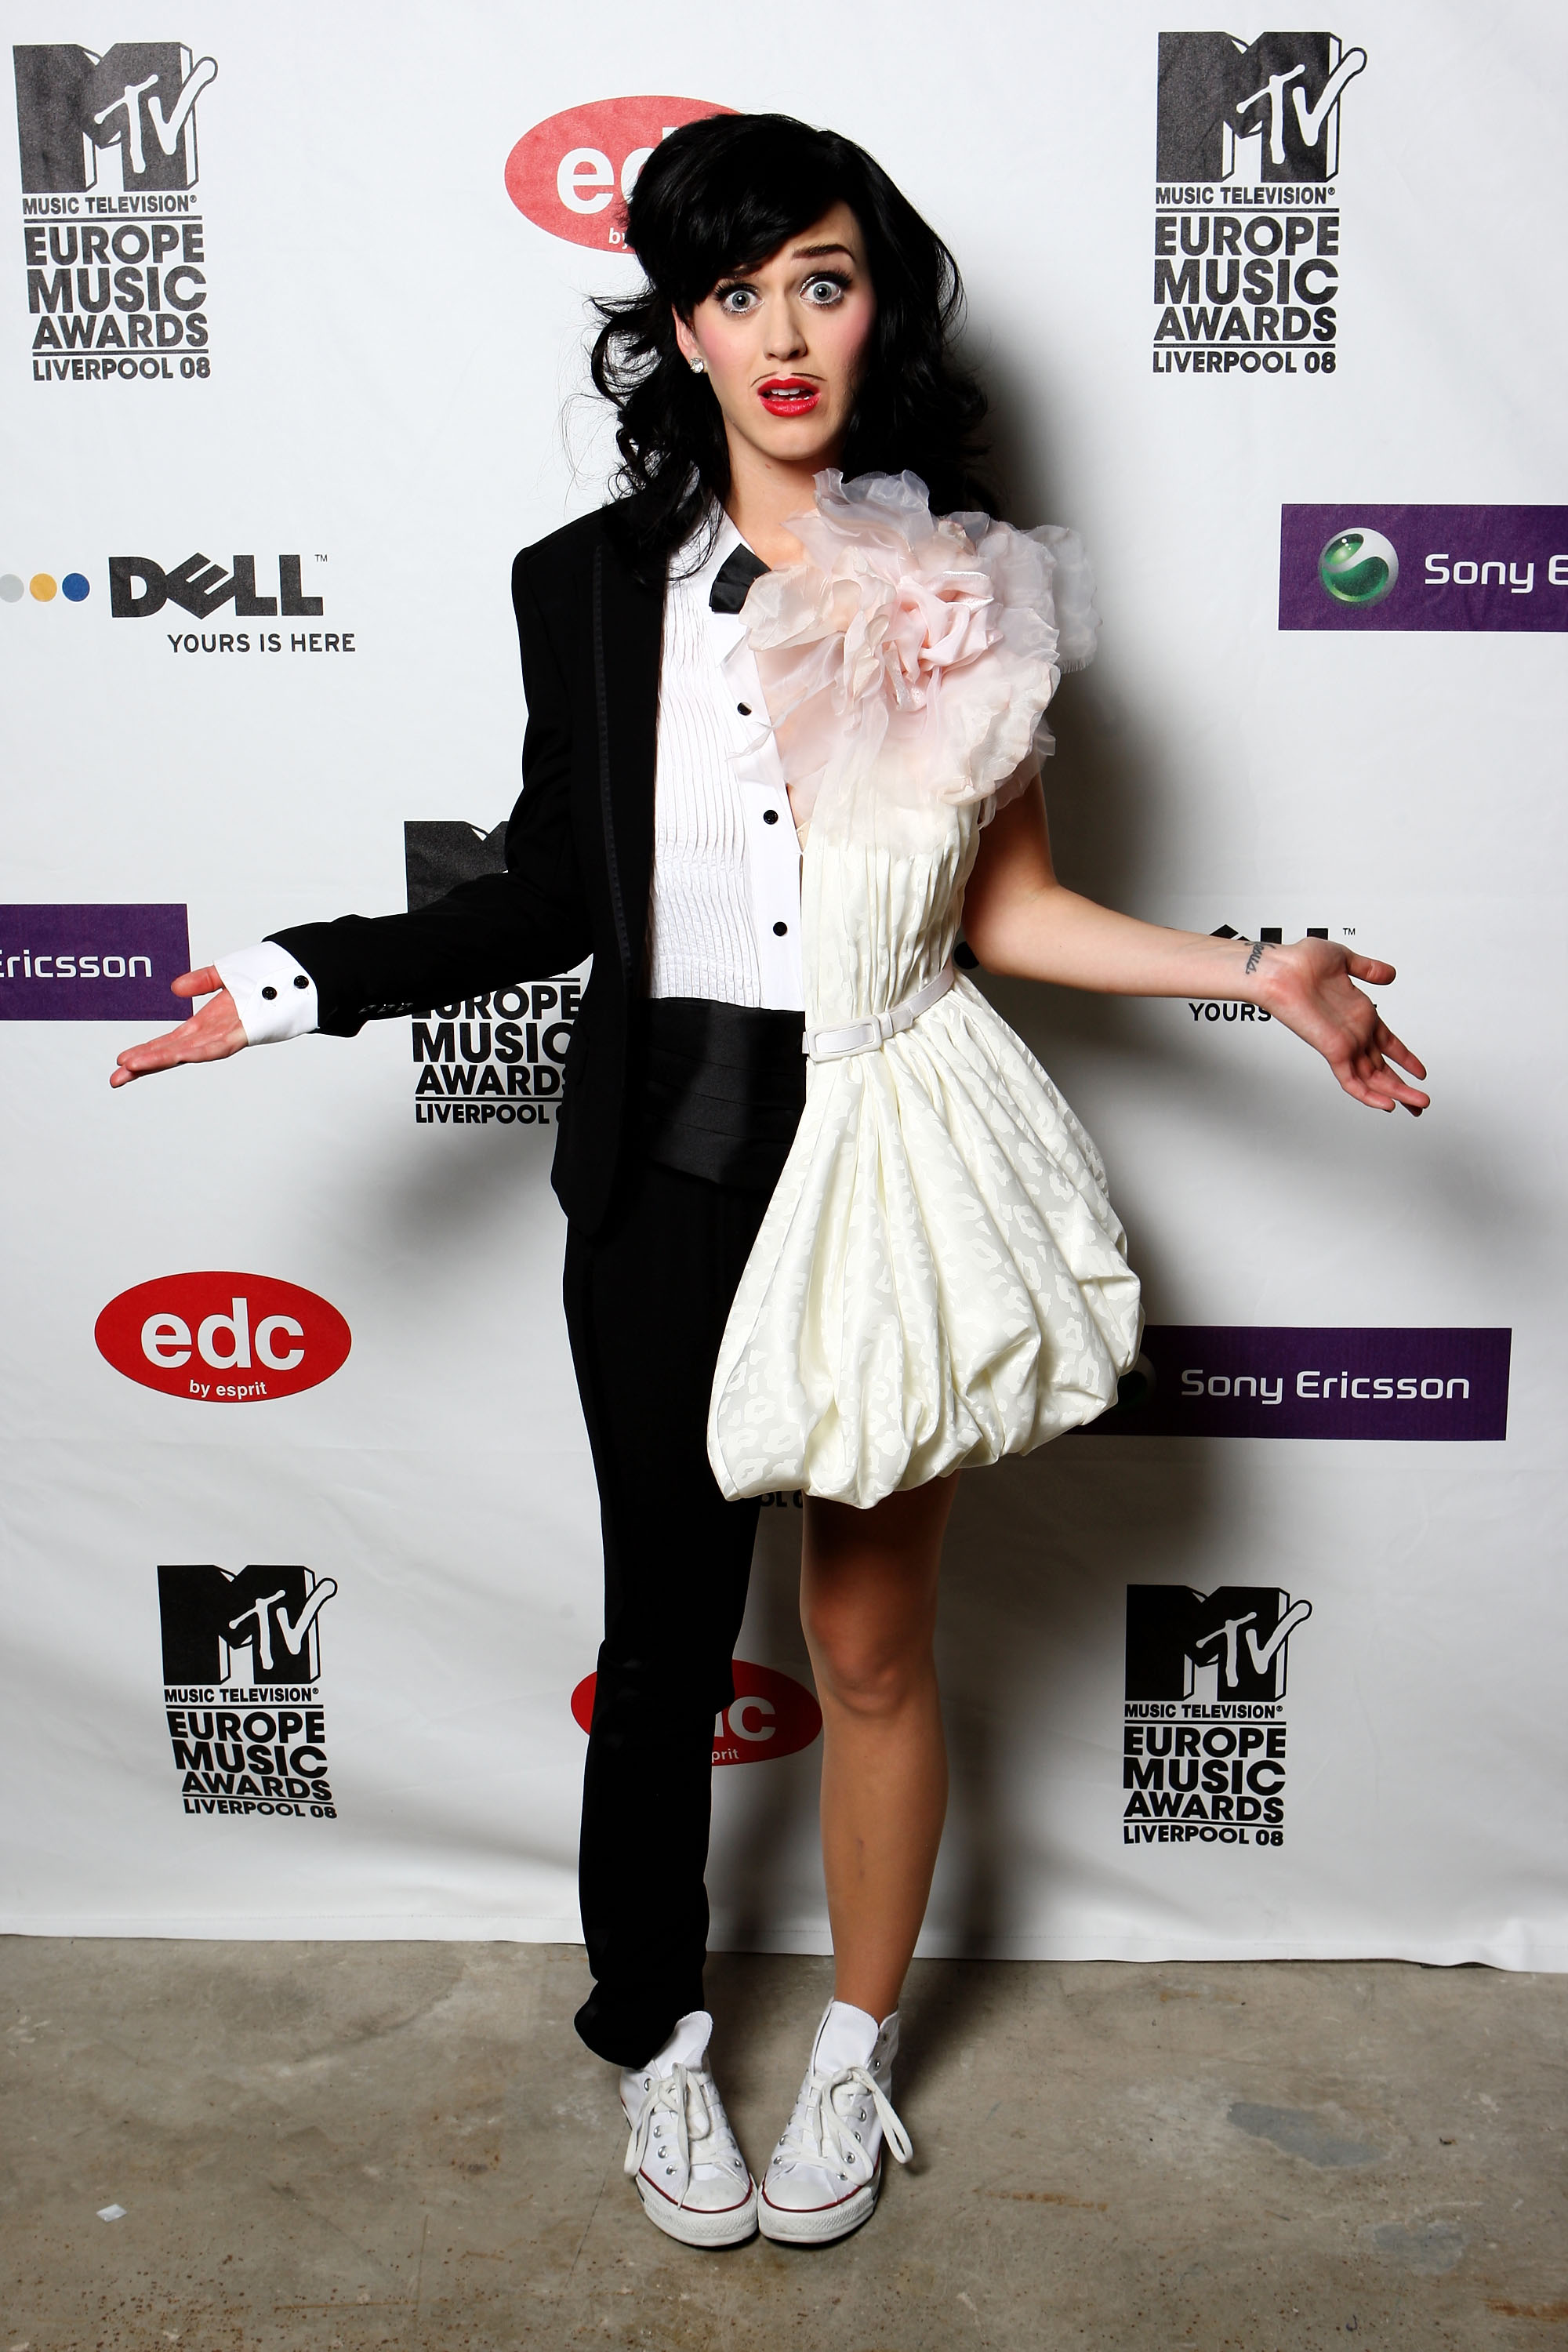 Katy Perry photo 189 of 2694 pics, wallpaper - photo #128611 - ThePlace2